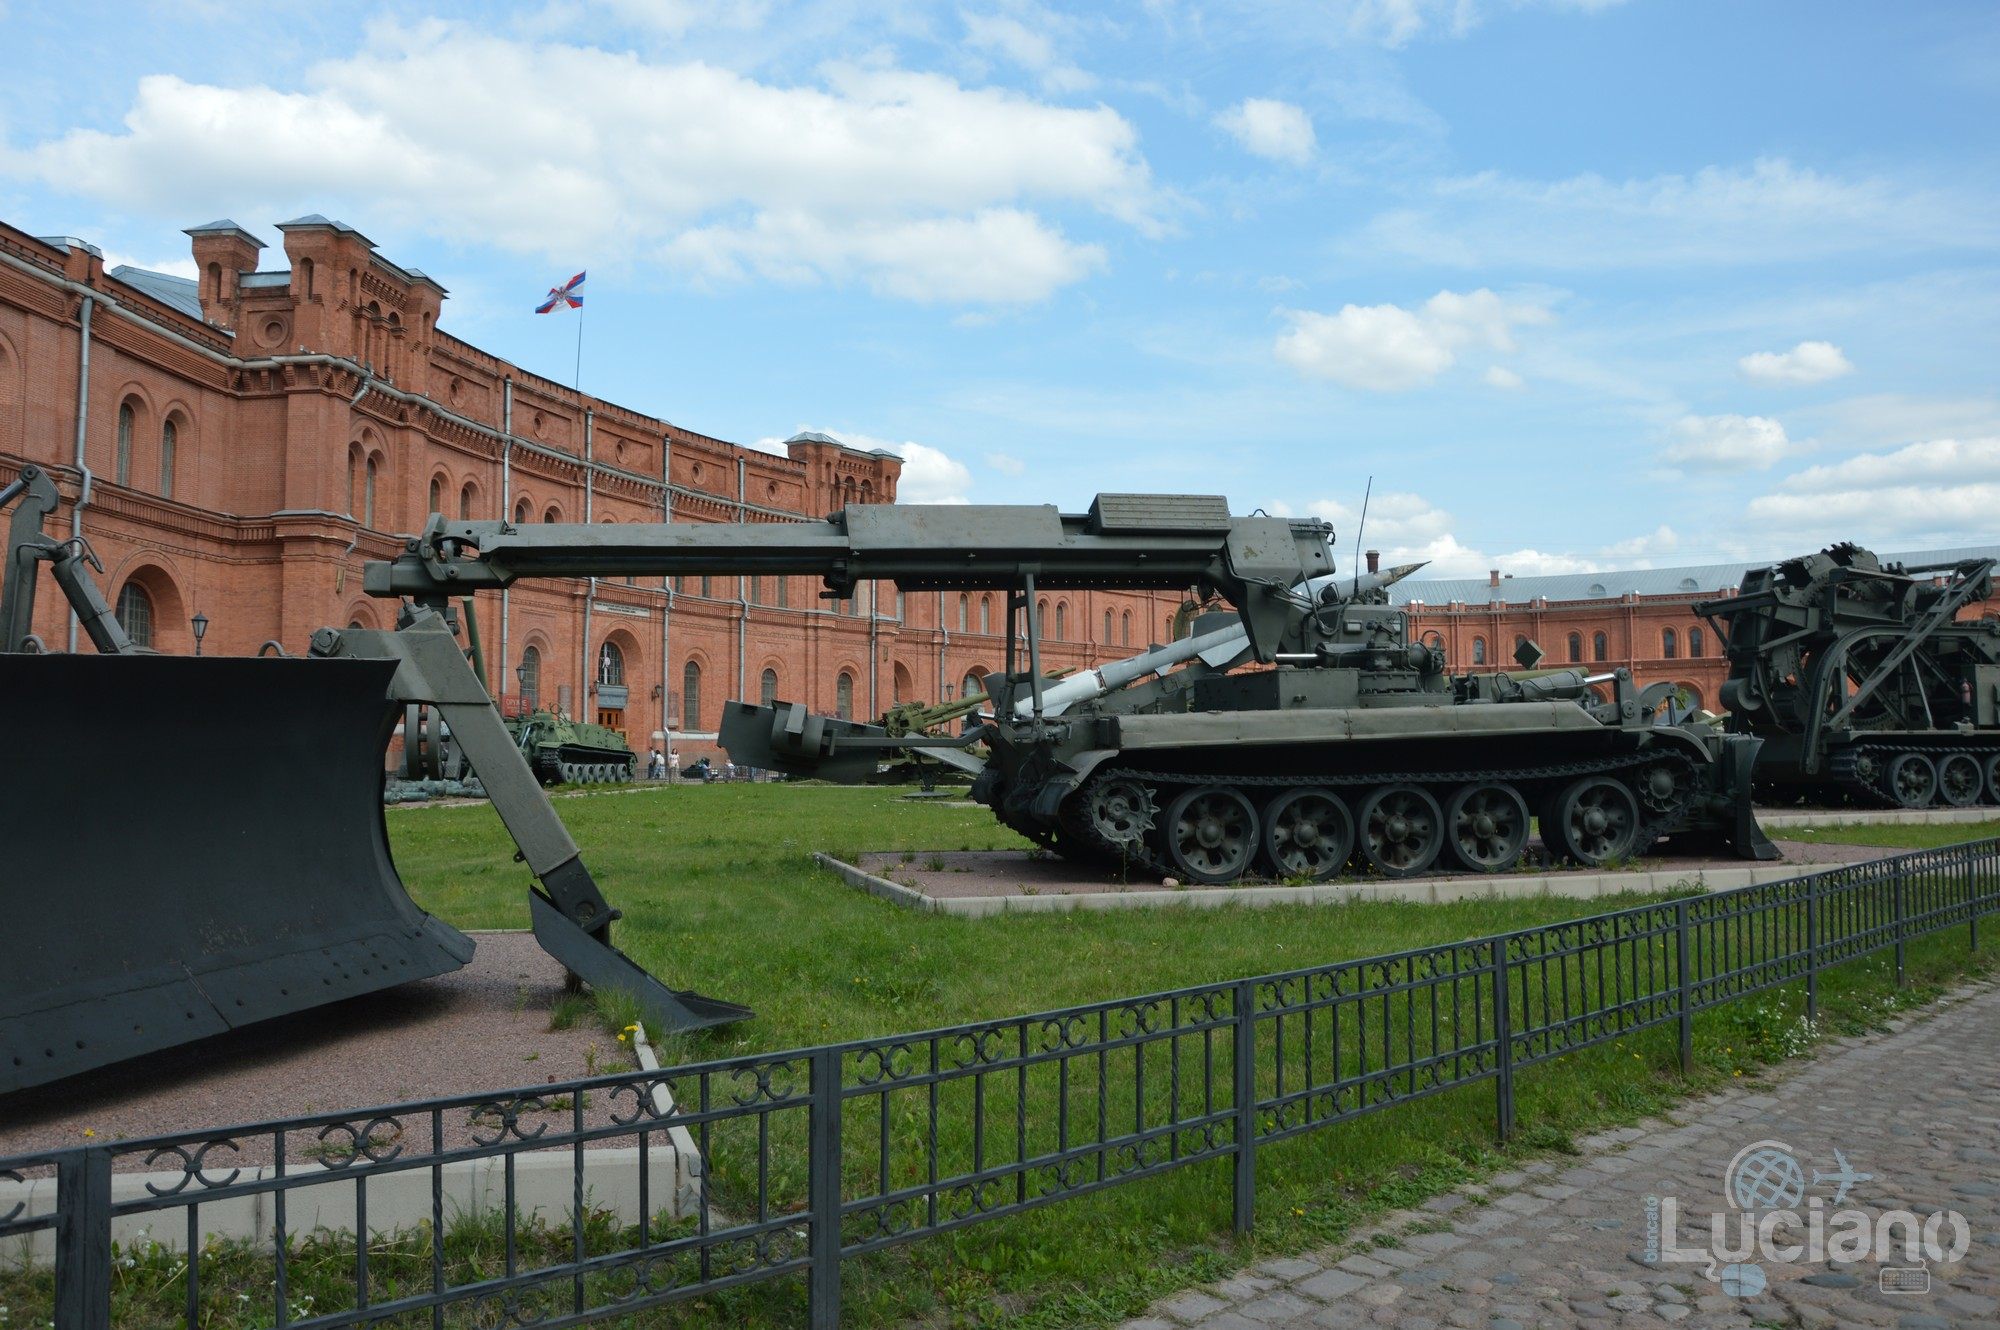 Military-Historical-Museum-of-Artillery-Engineer-and-Signal-Corps-St-Petersburg-Russia-Luciano-Blancato- (87)